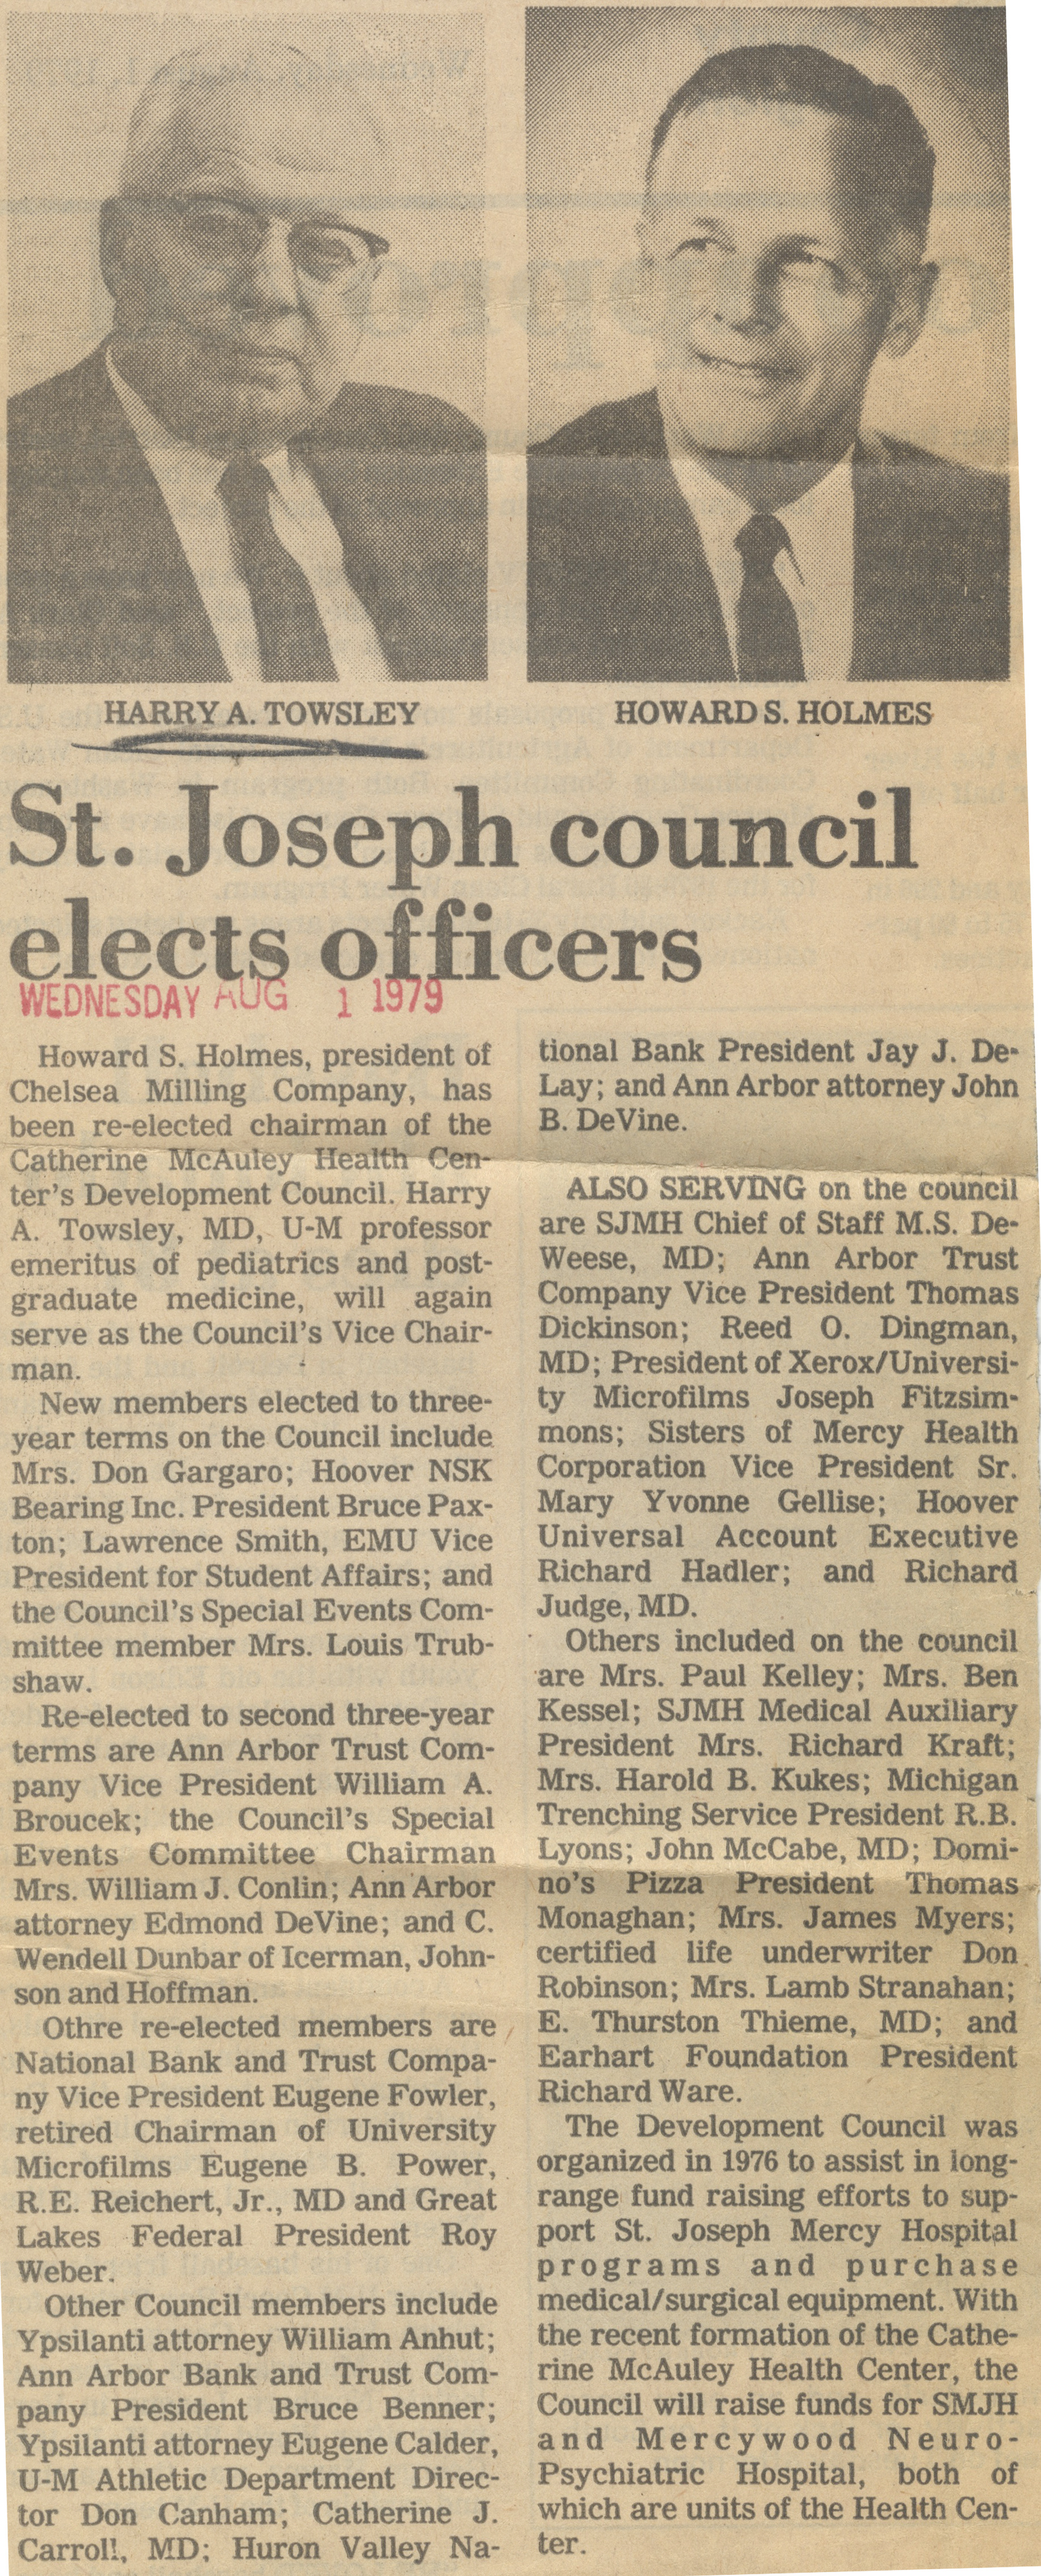 St. Joseph council elects officers image